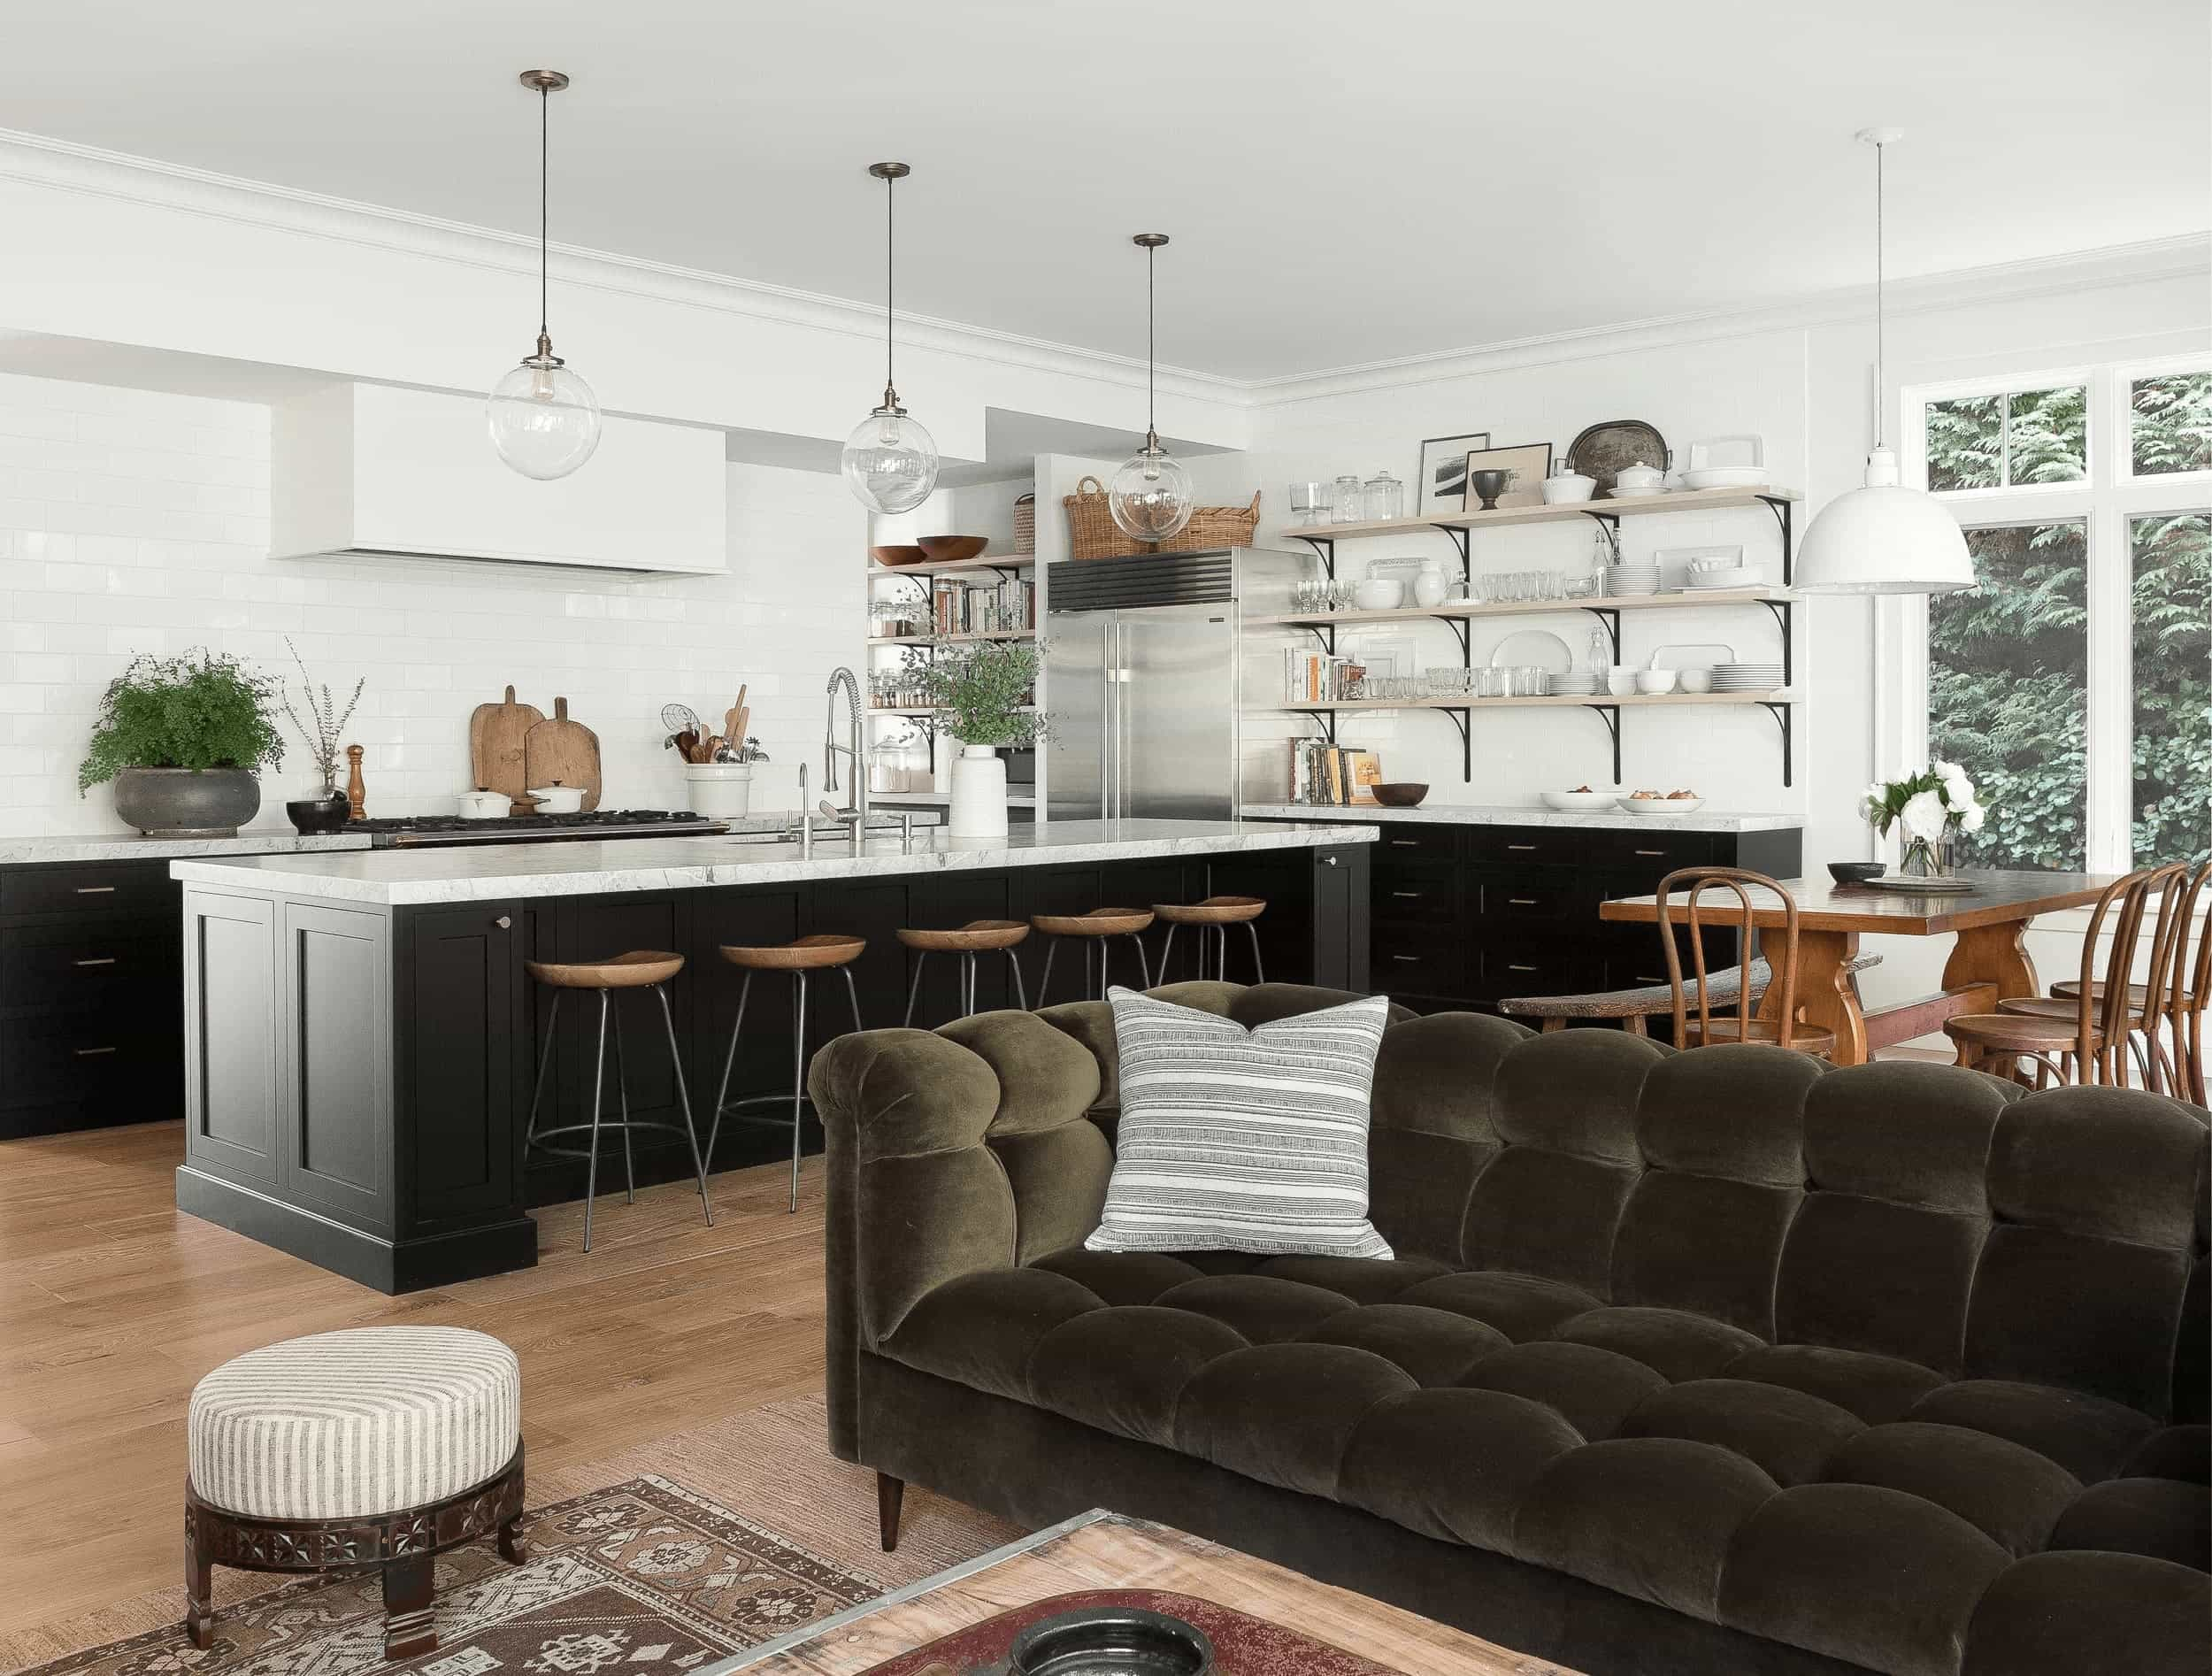 this is a farmhouse kitchen and living room with bar stools, wooden shelves and marble kitchen bar